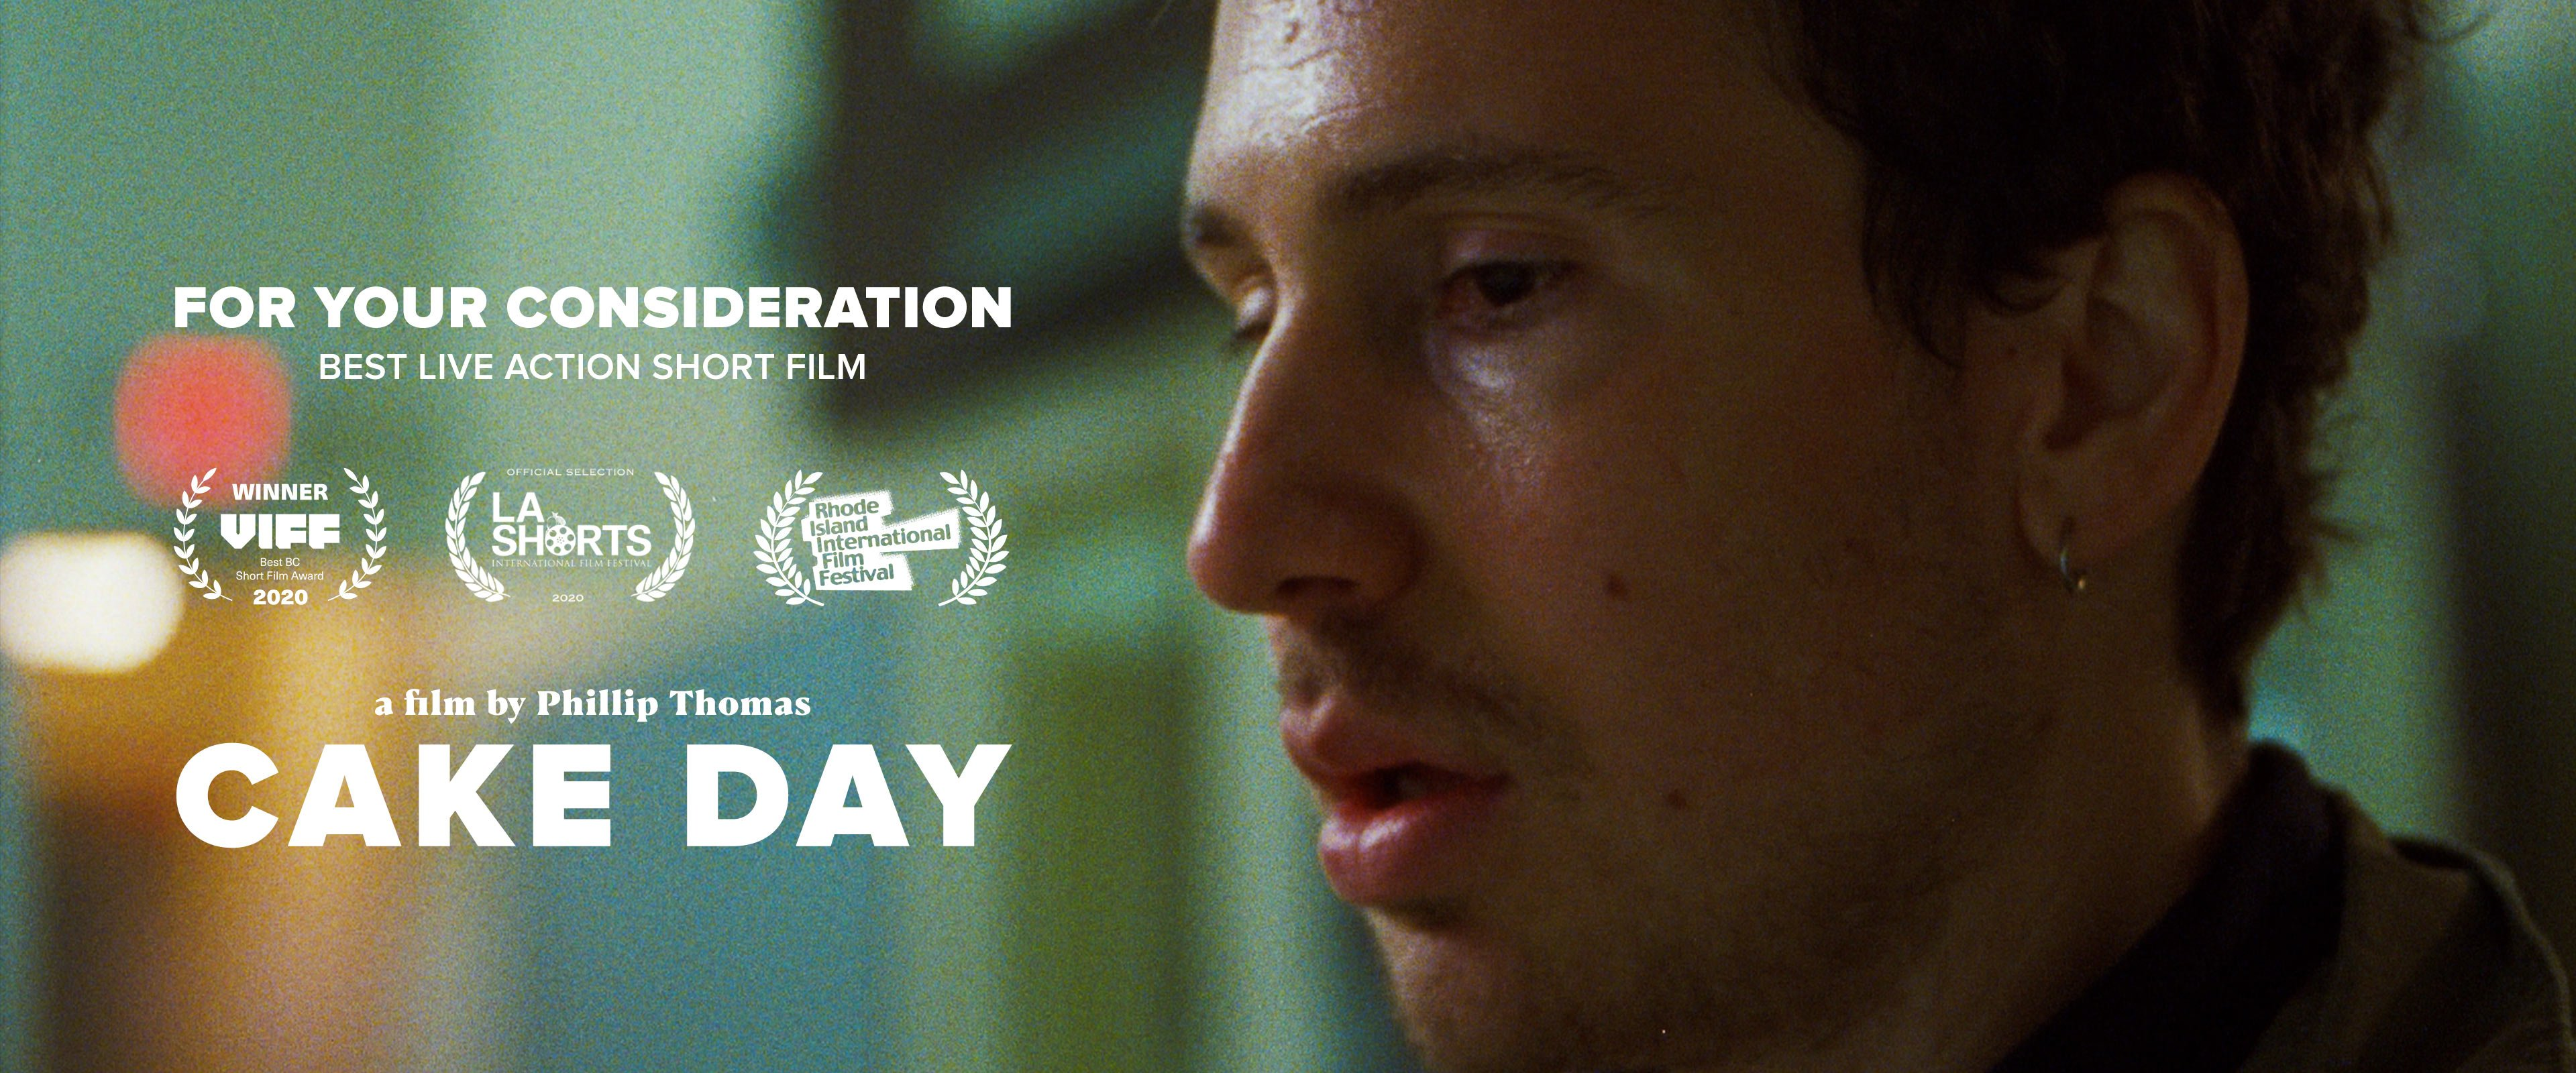 Cake Day - A film by Phillip Thomas - Header